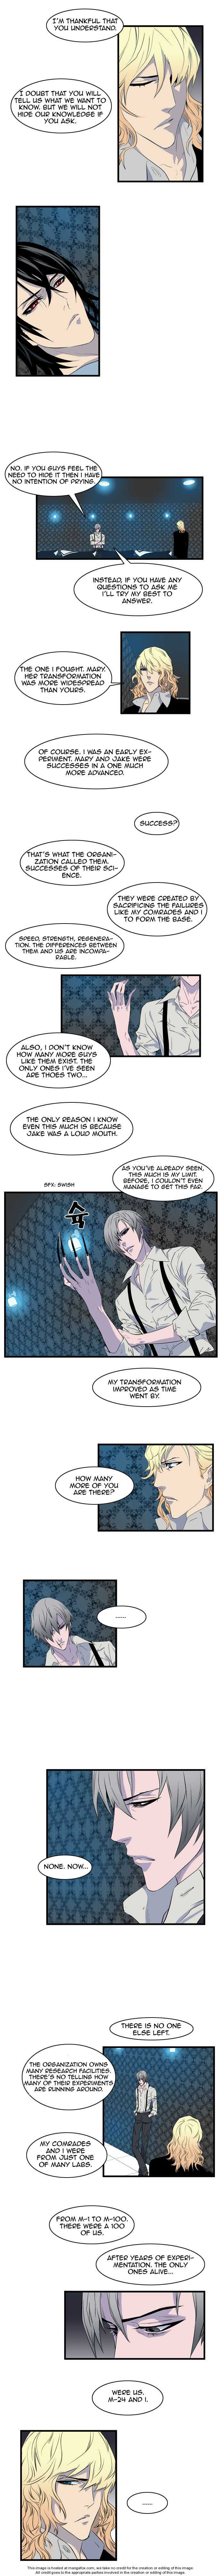 Noblesse 79 Page 2